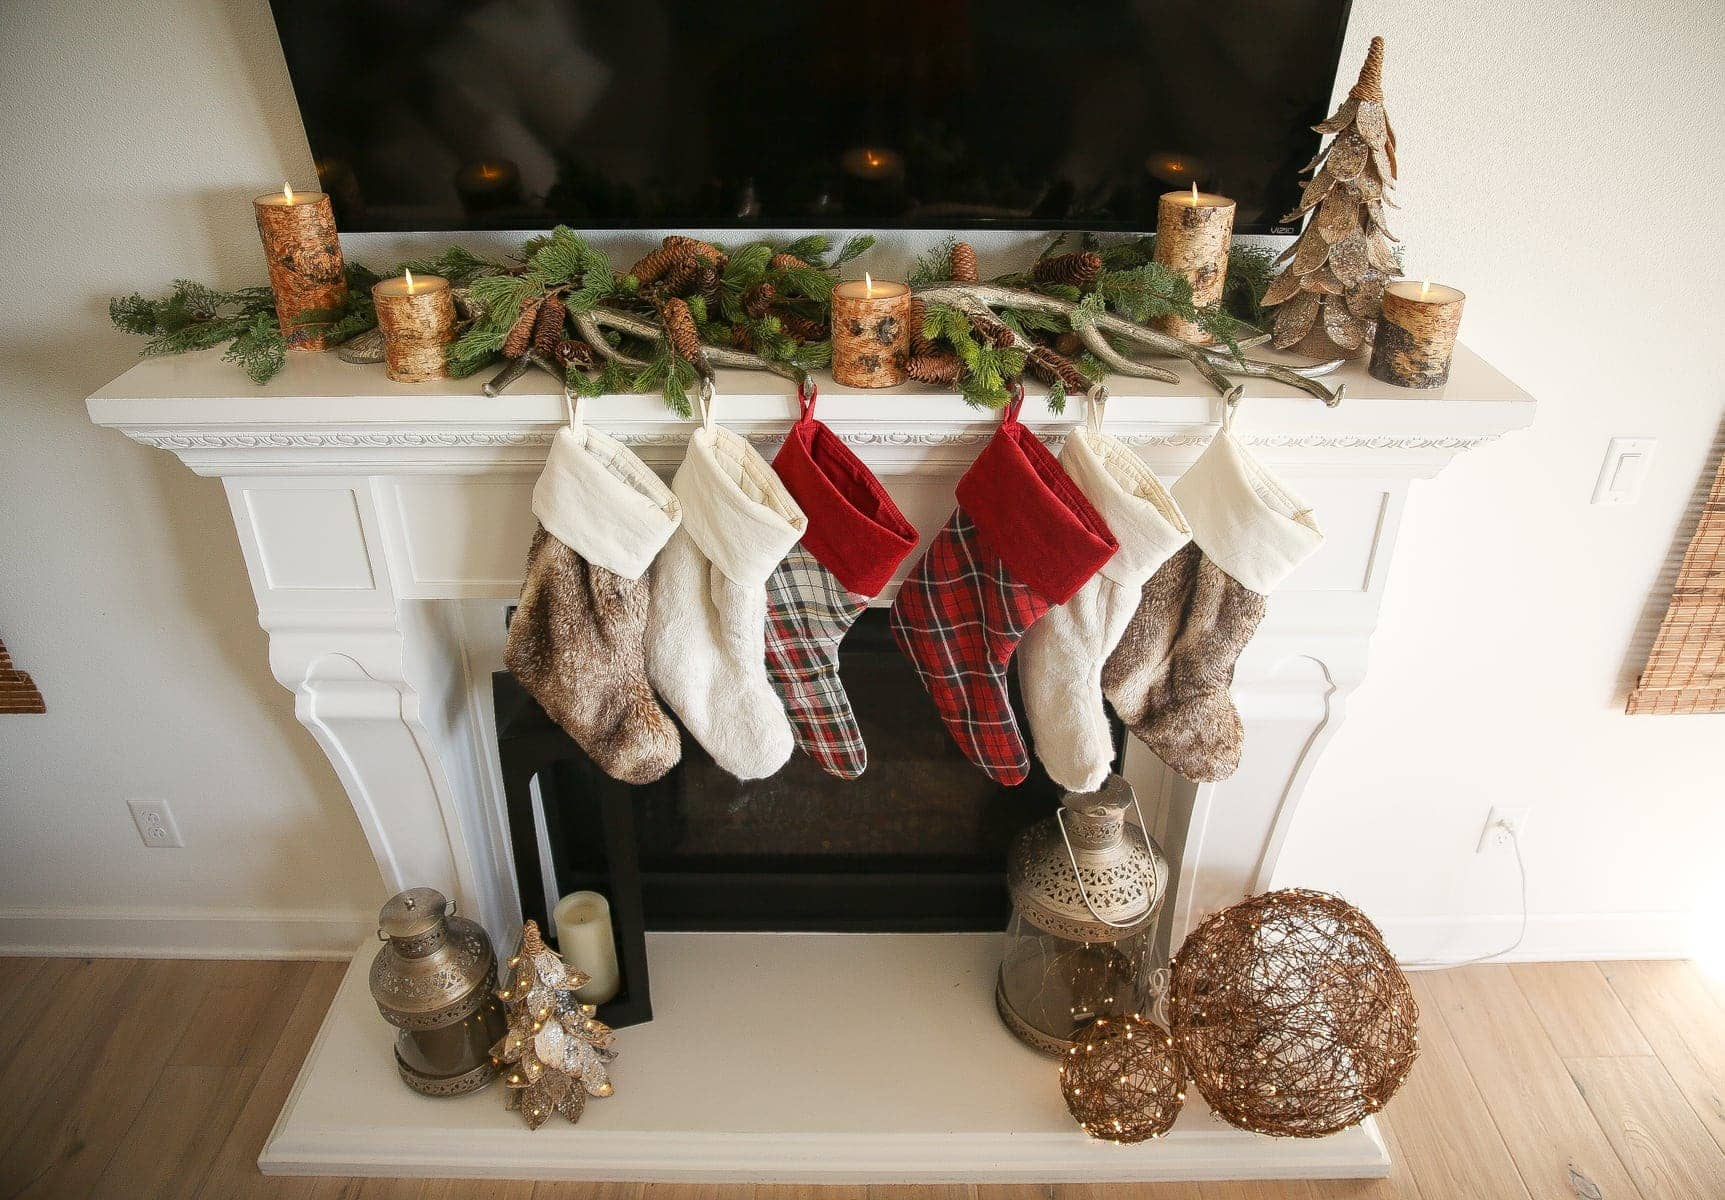 fireplace mantle with stockings